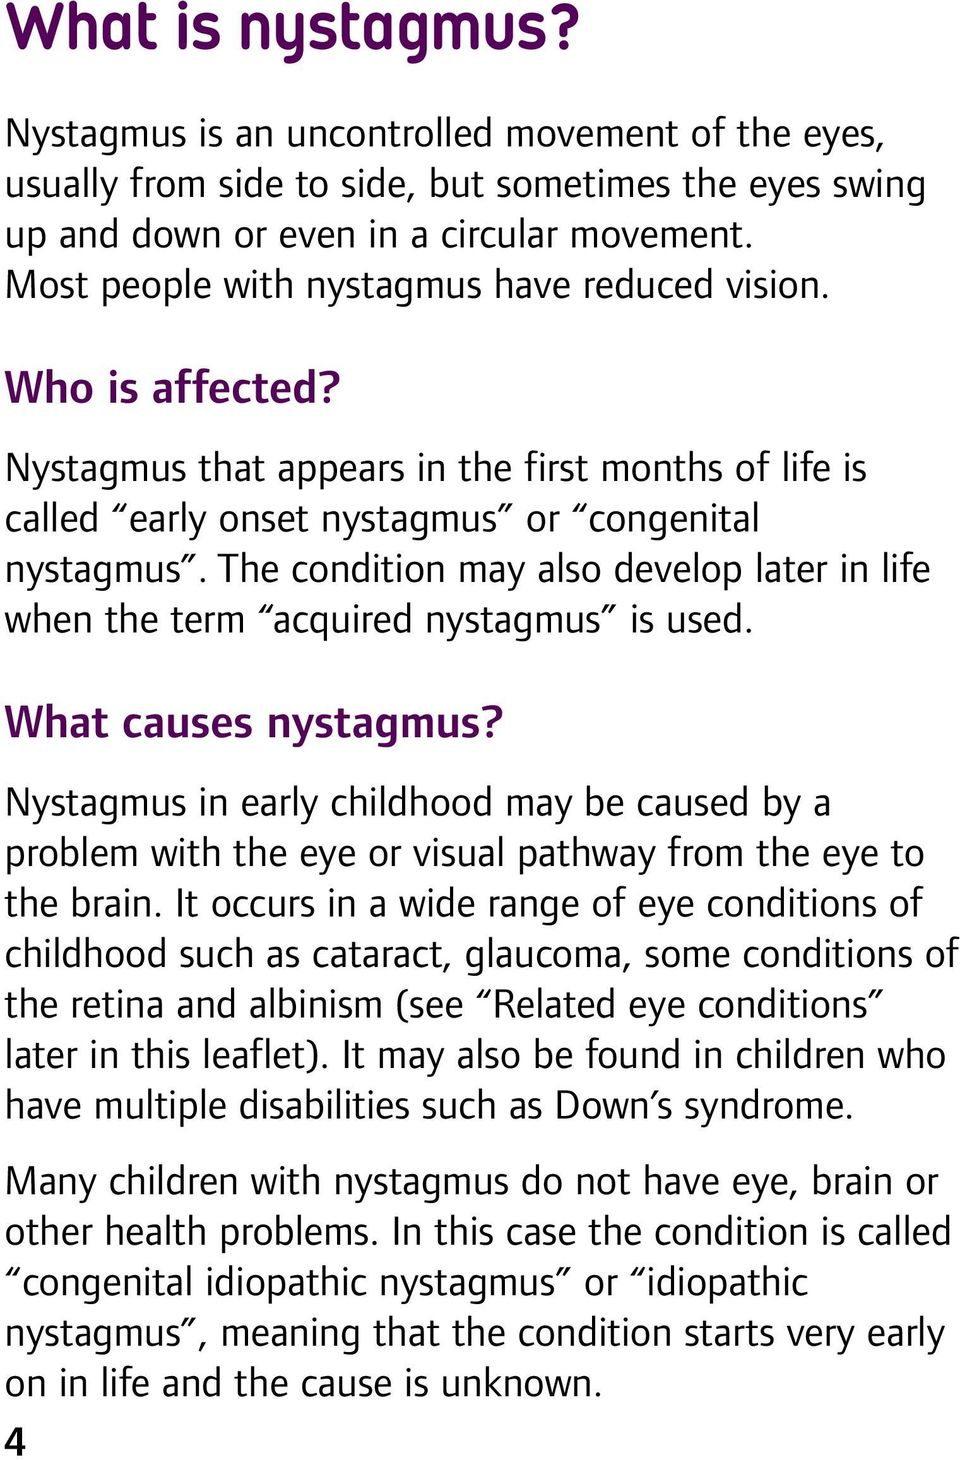 The condition may aso deveop ater in ife when the term acquired nystagmus is used. What causes nystagmus?